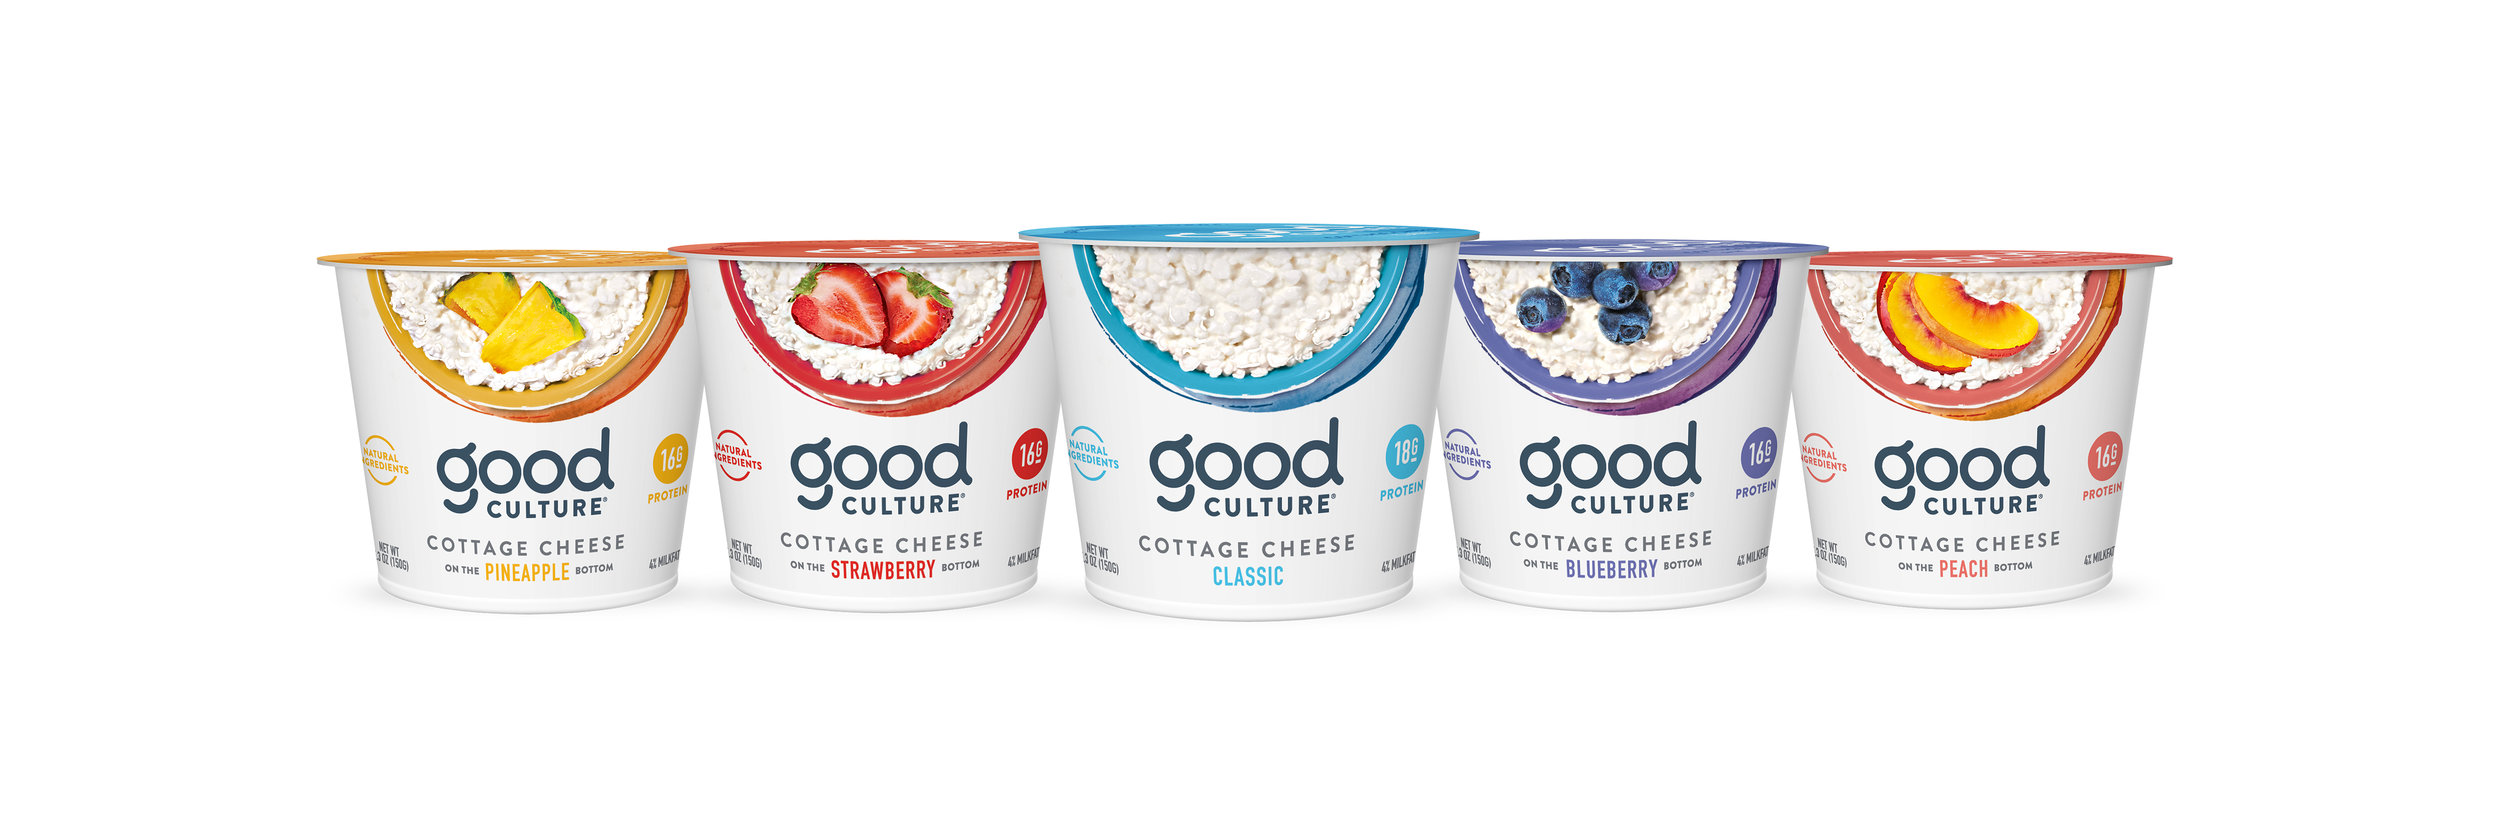 Good Culture Cottage Cheese Gets A Crisp New Look